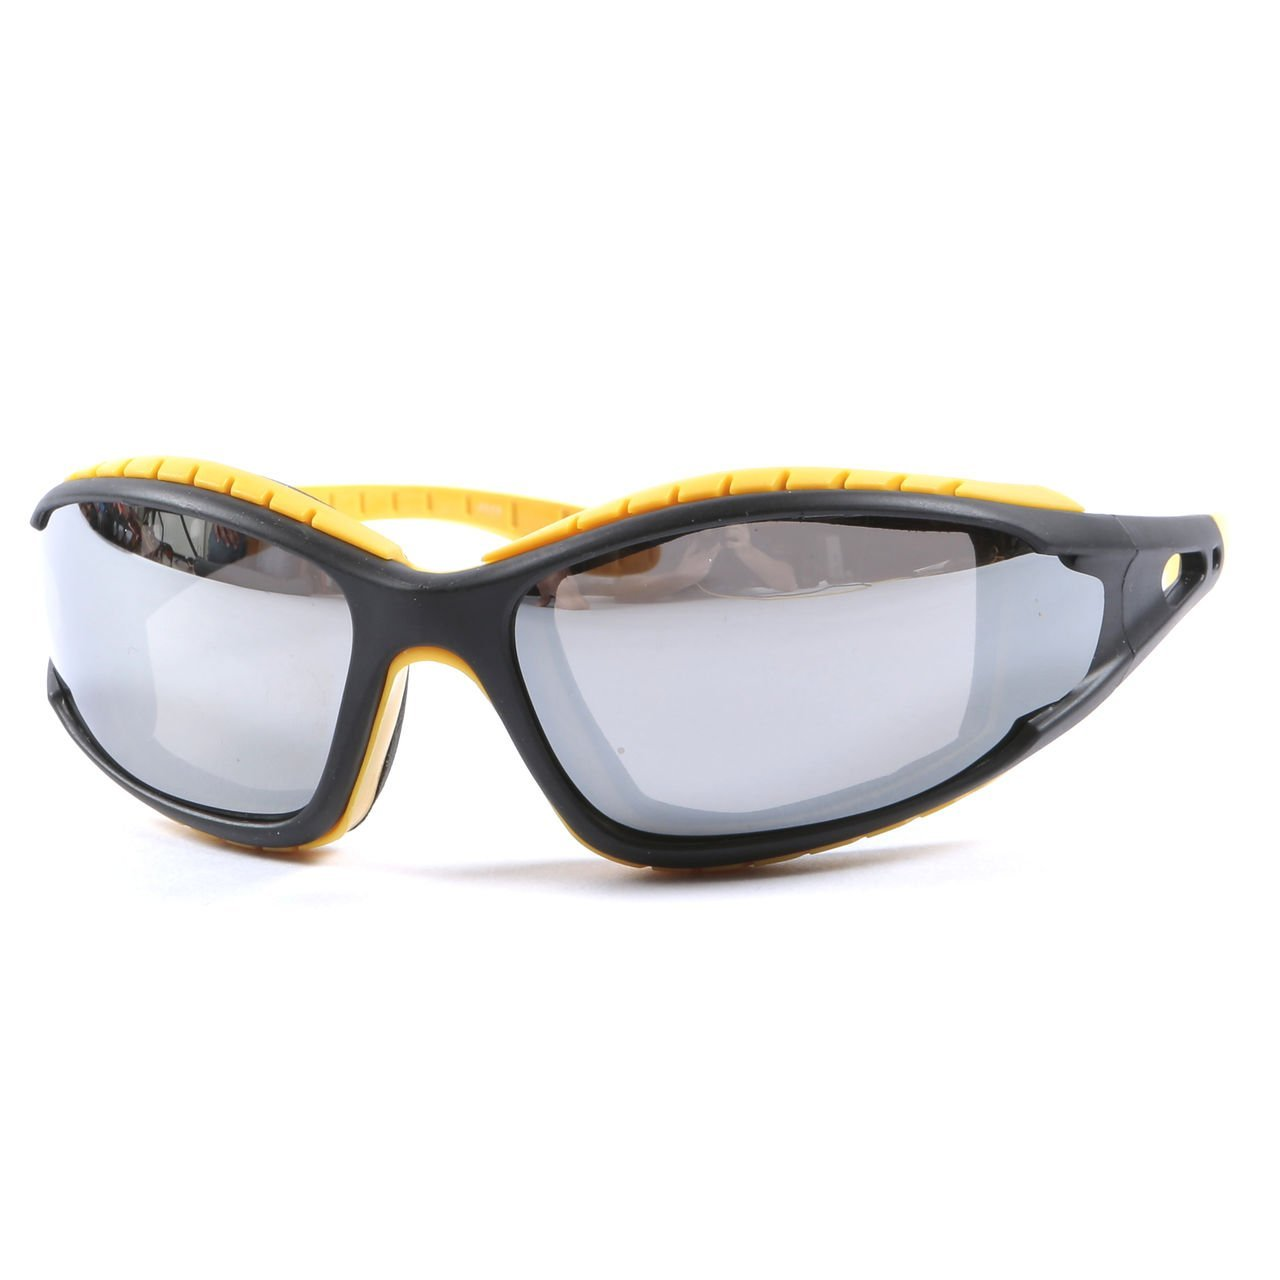 Motorcycle Biker Sunglasses Padded Cushion Wraparound Polycarbonate Shatterproof UV400 Silver Mirror Lens + Case